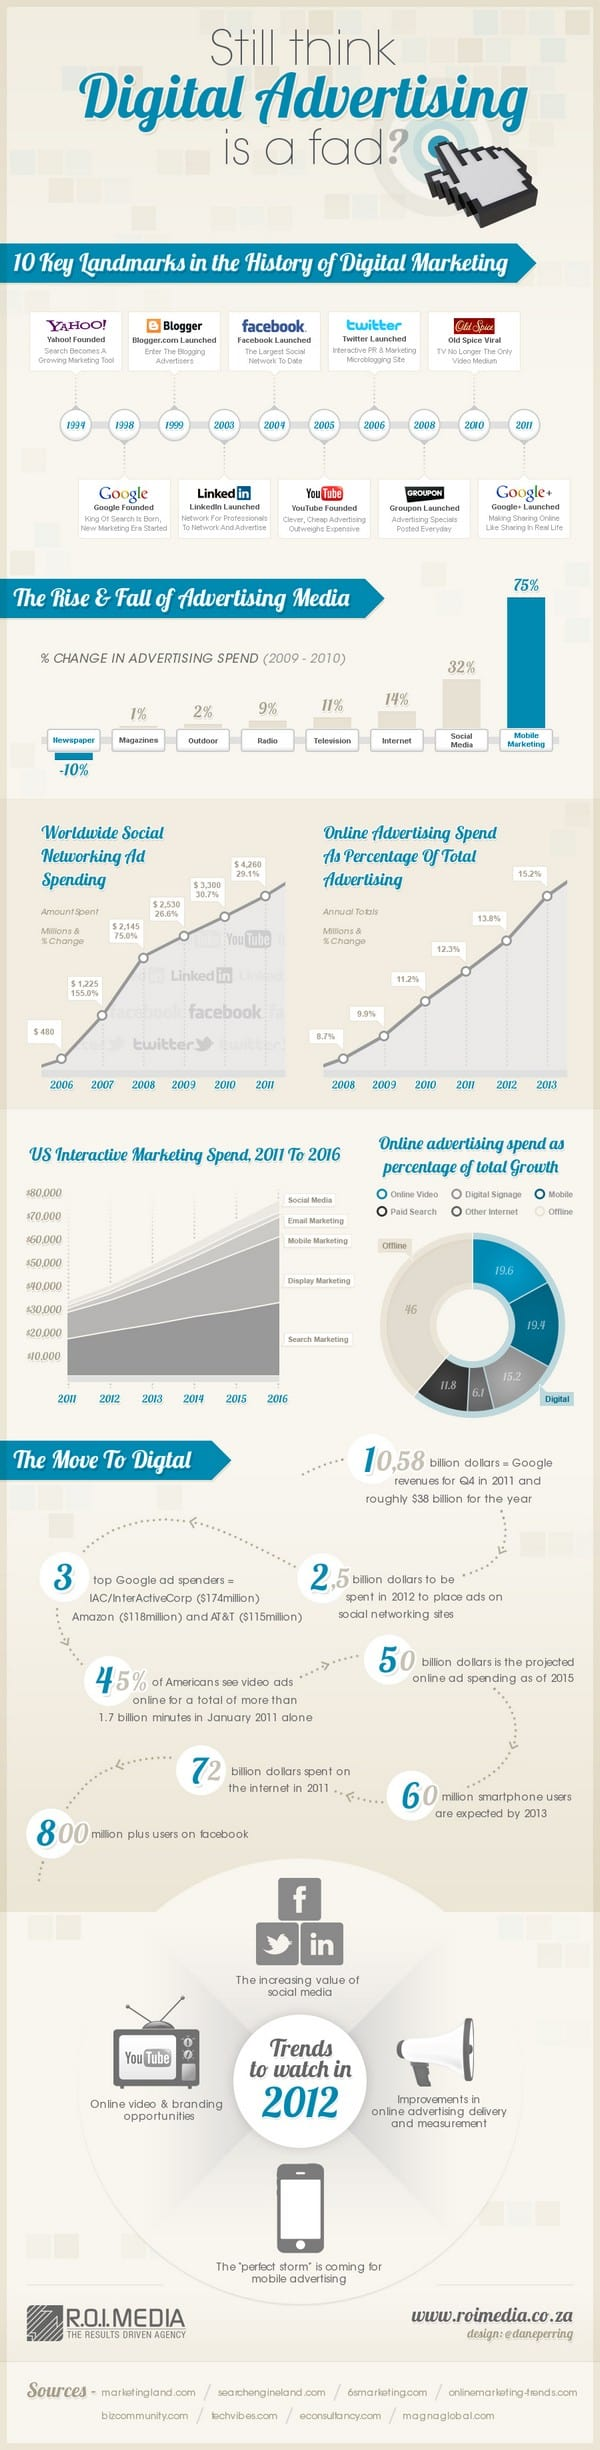 Still think Digital Advertising is a fad Infographic